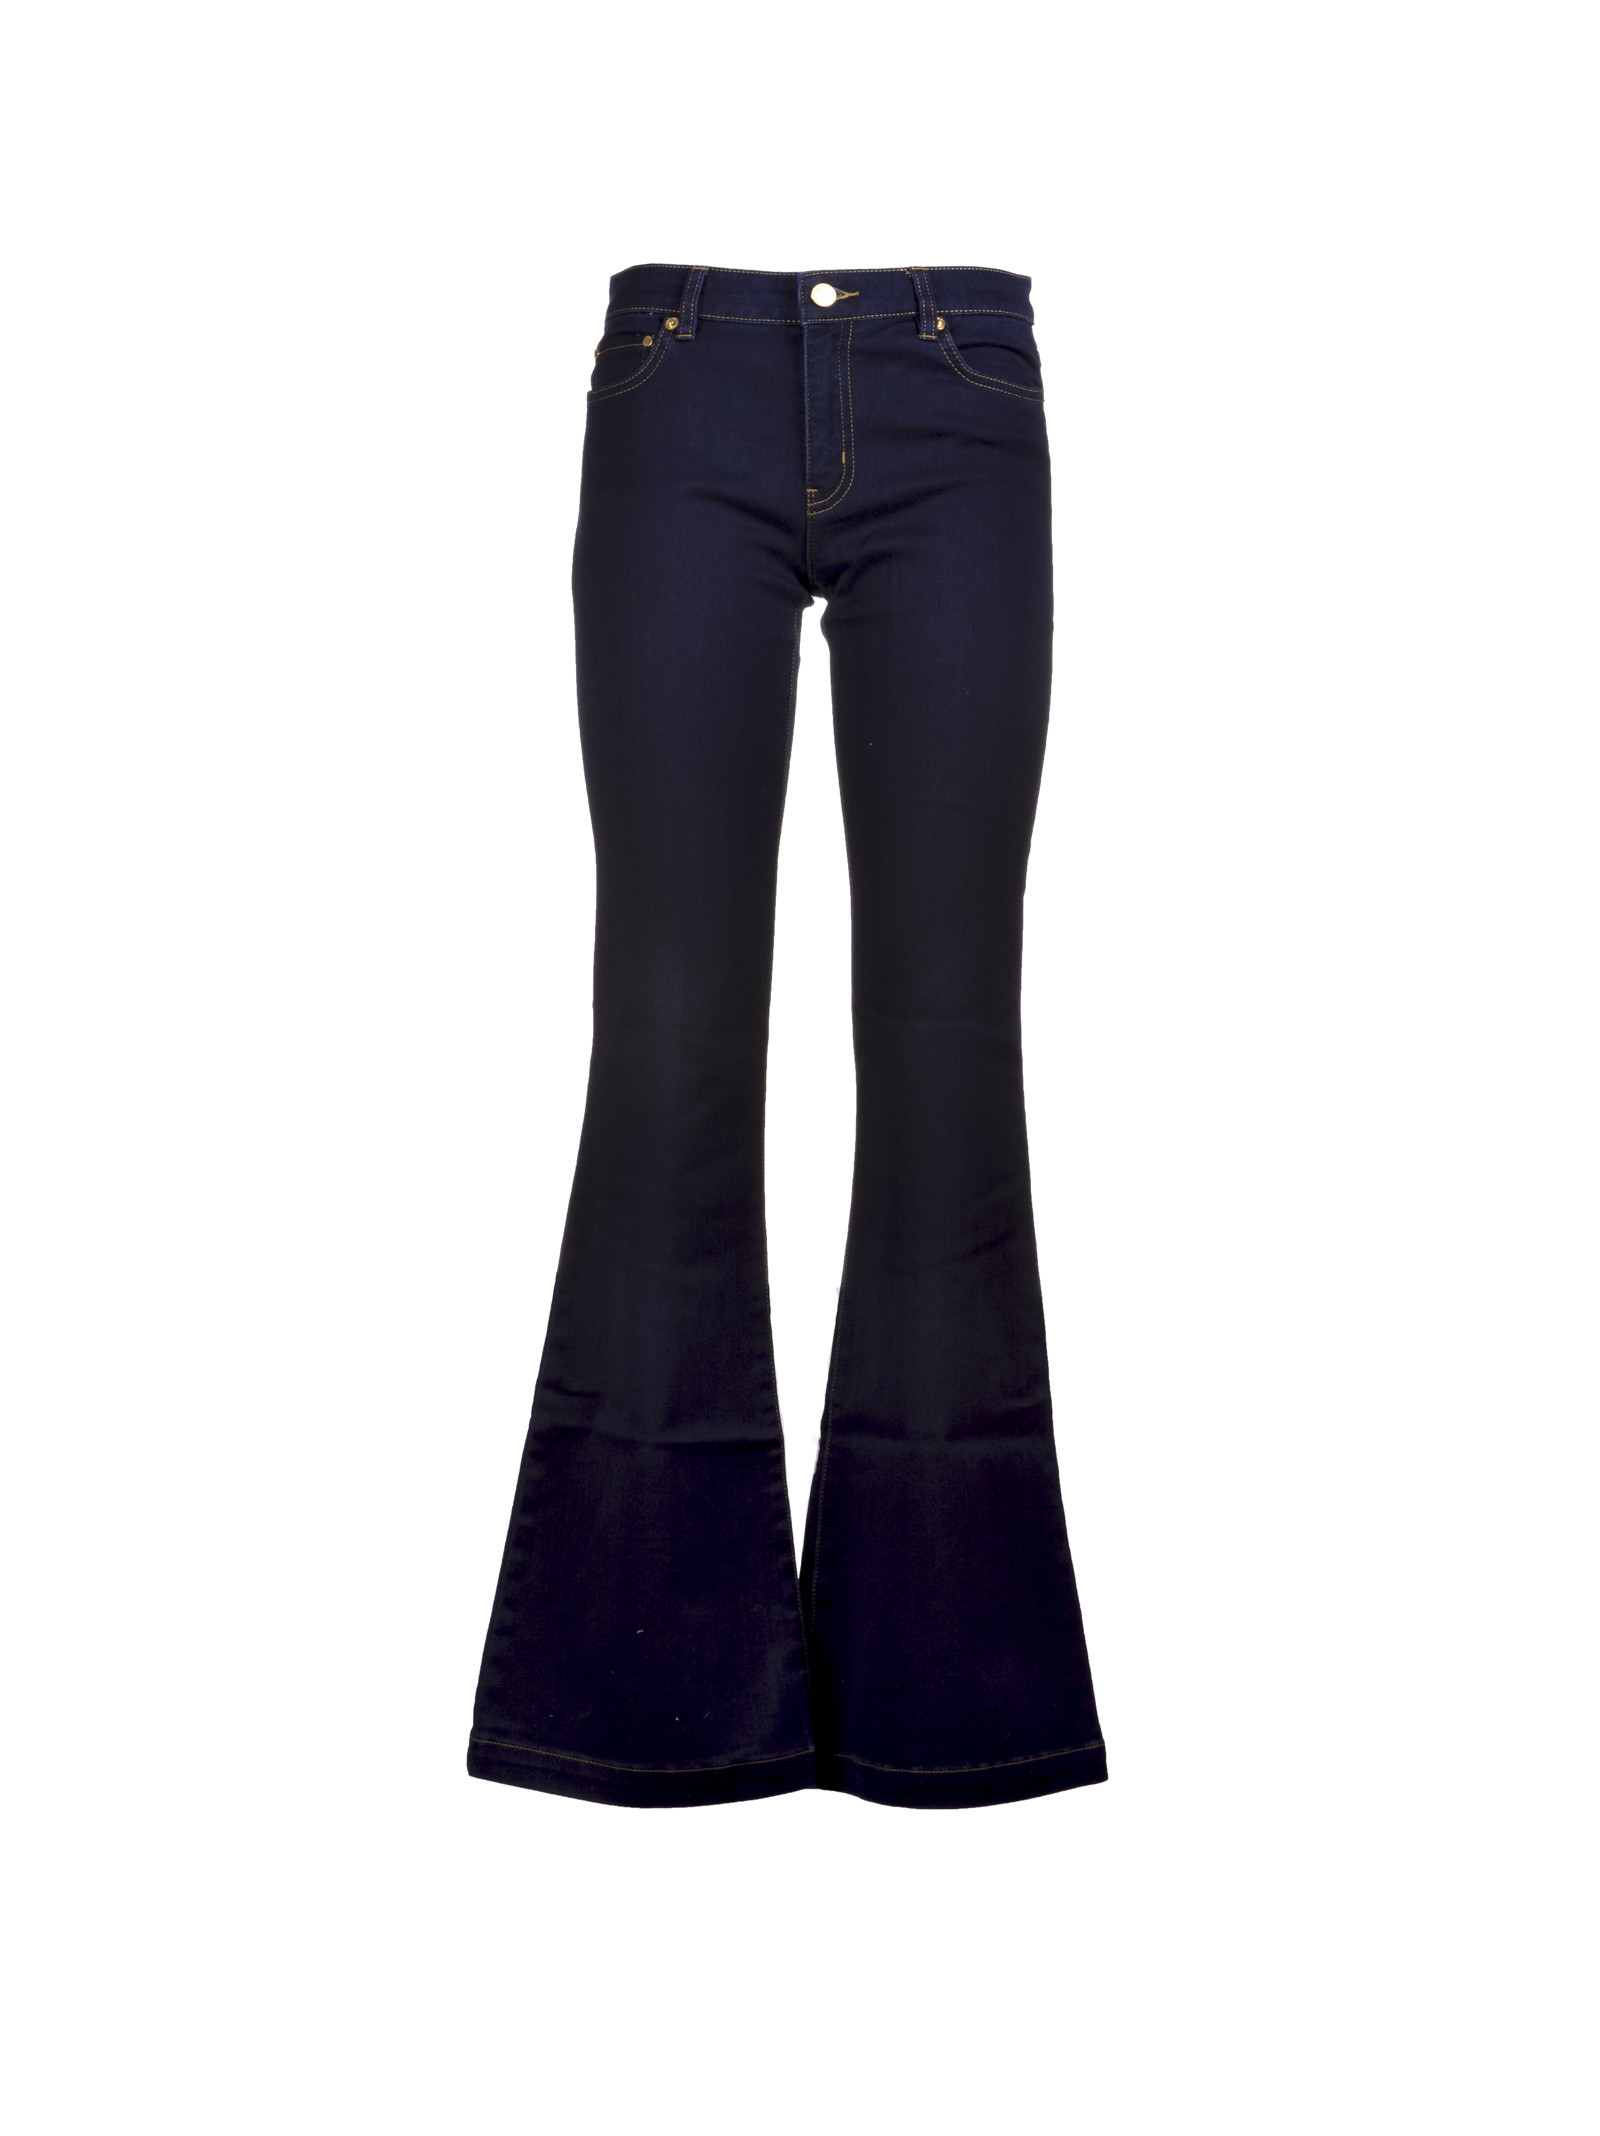 michael kors female  michael kors boot cut jeans